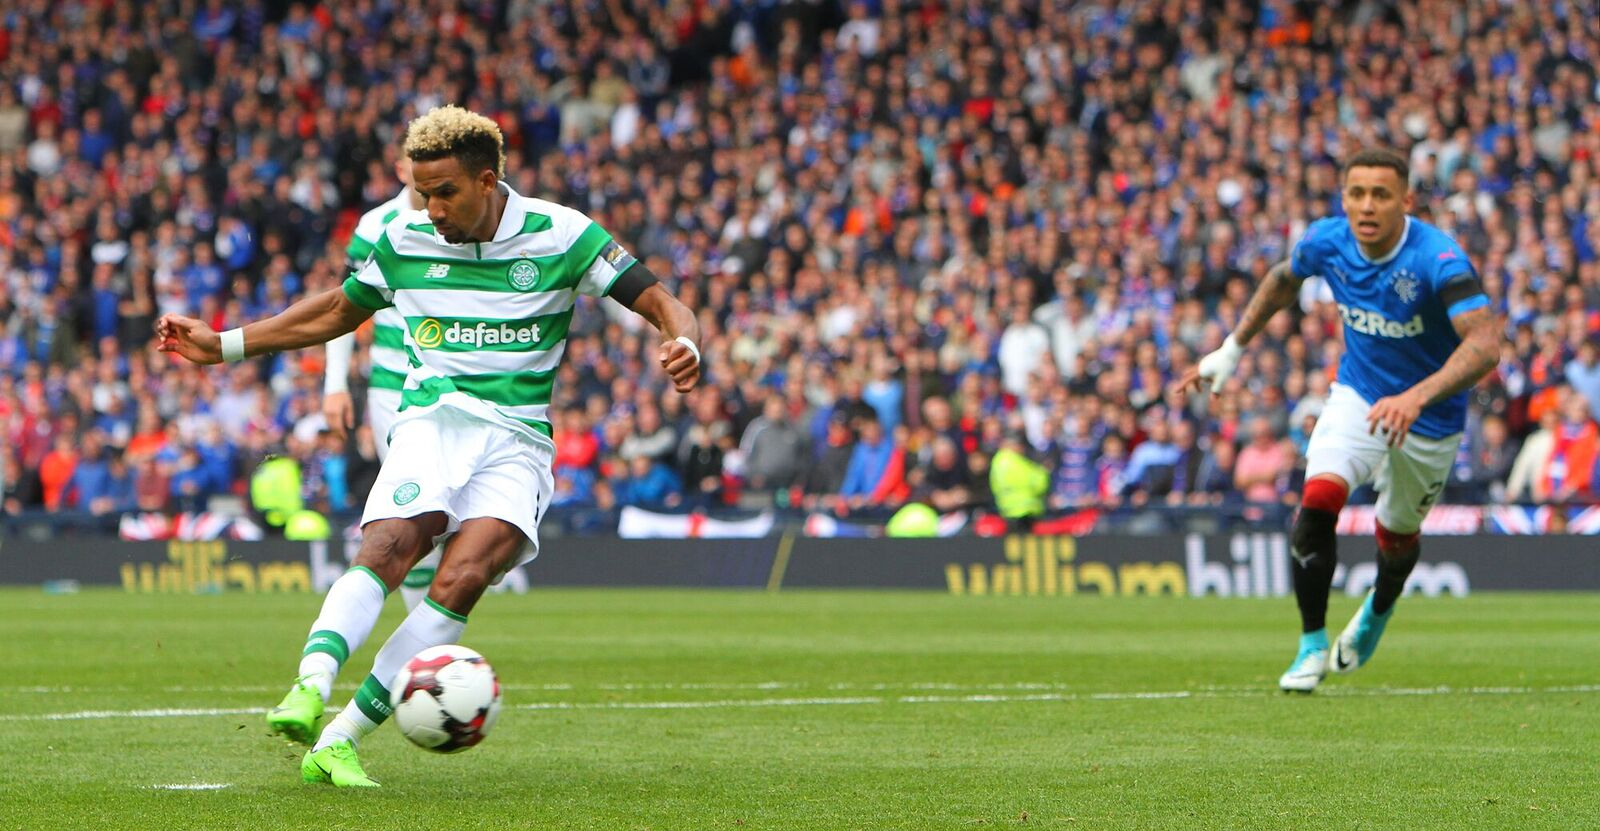 'Hampden Win As Good As 5-1 Victory,' Scotty Sinclair